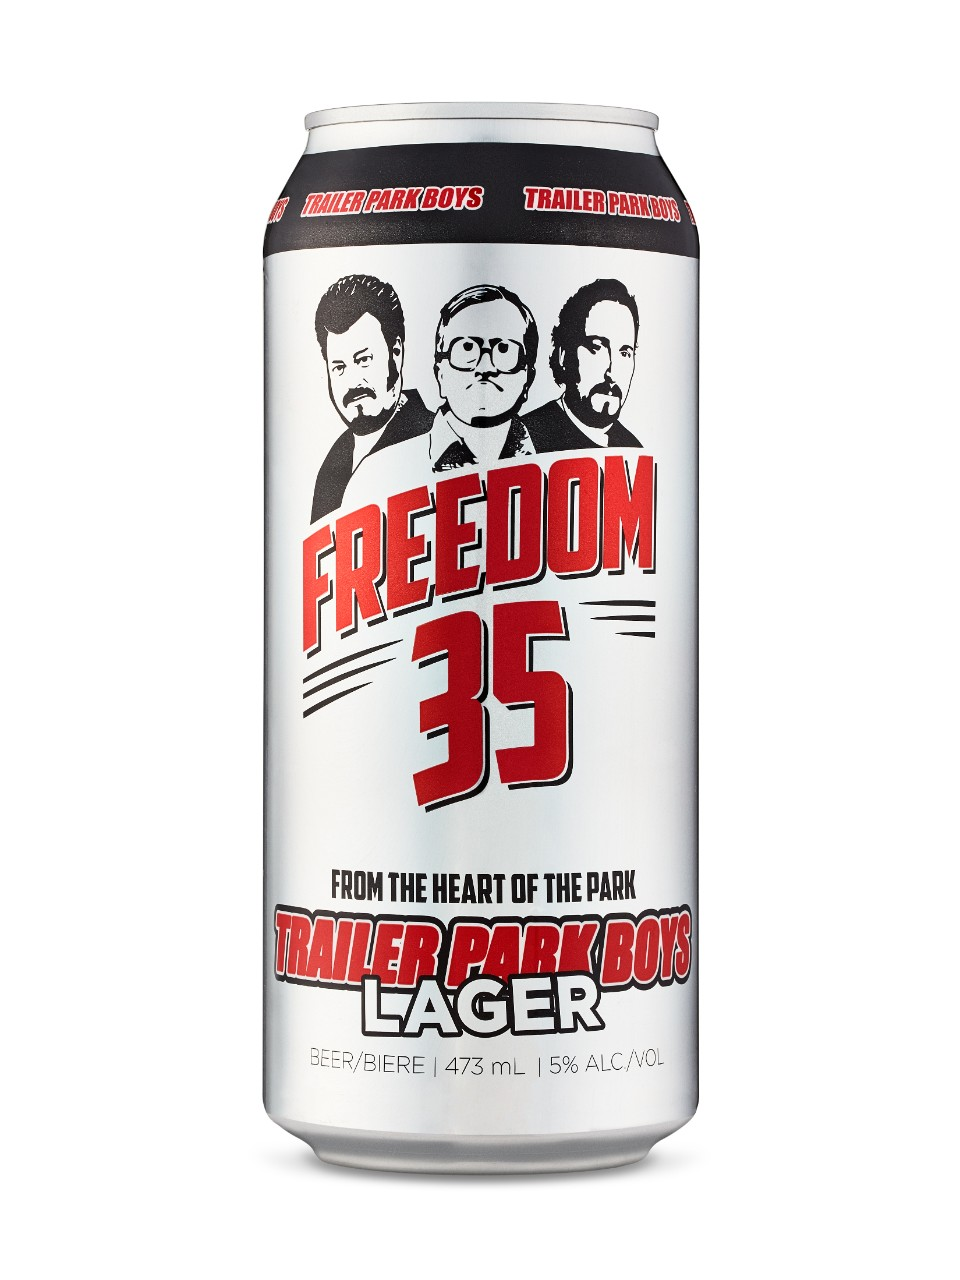 Trailer Park Boys Freedom 35 Lager from LCBO